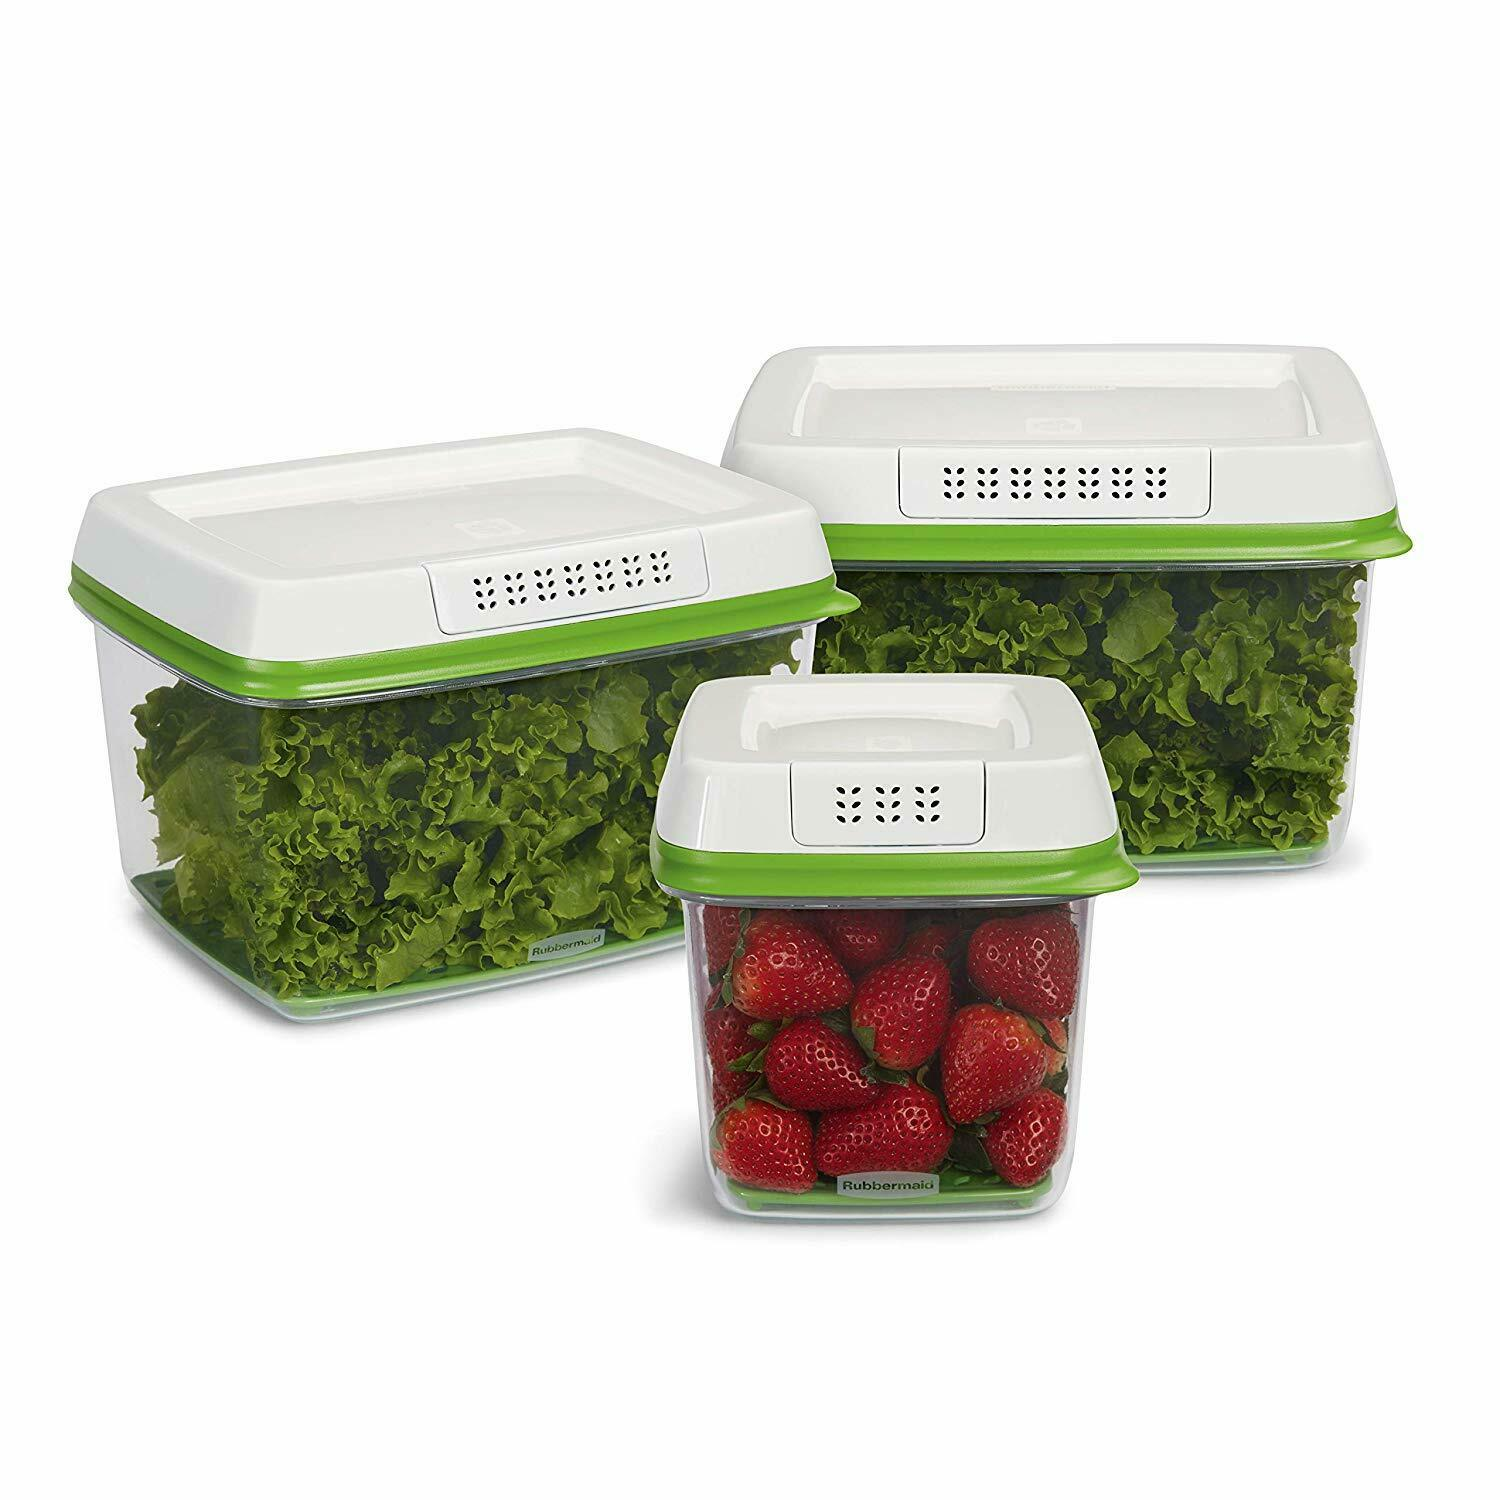 Rubbermaid FreshWorks Produce Saver Food Storage Containers, 3-Piece Set 2016450 1